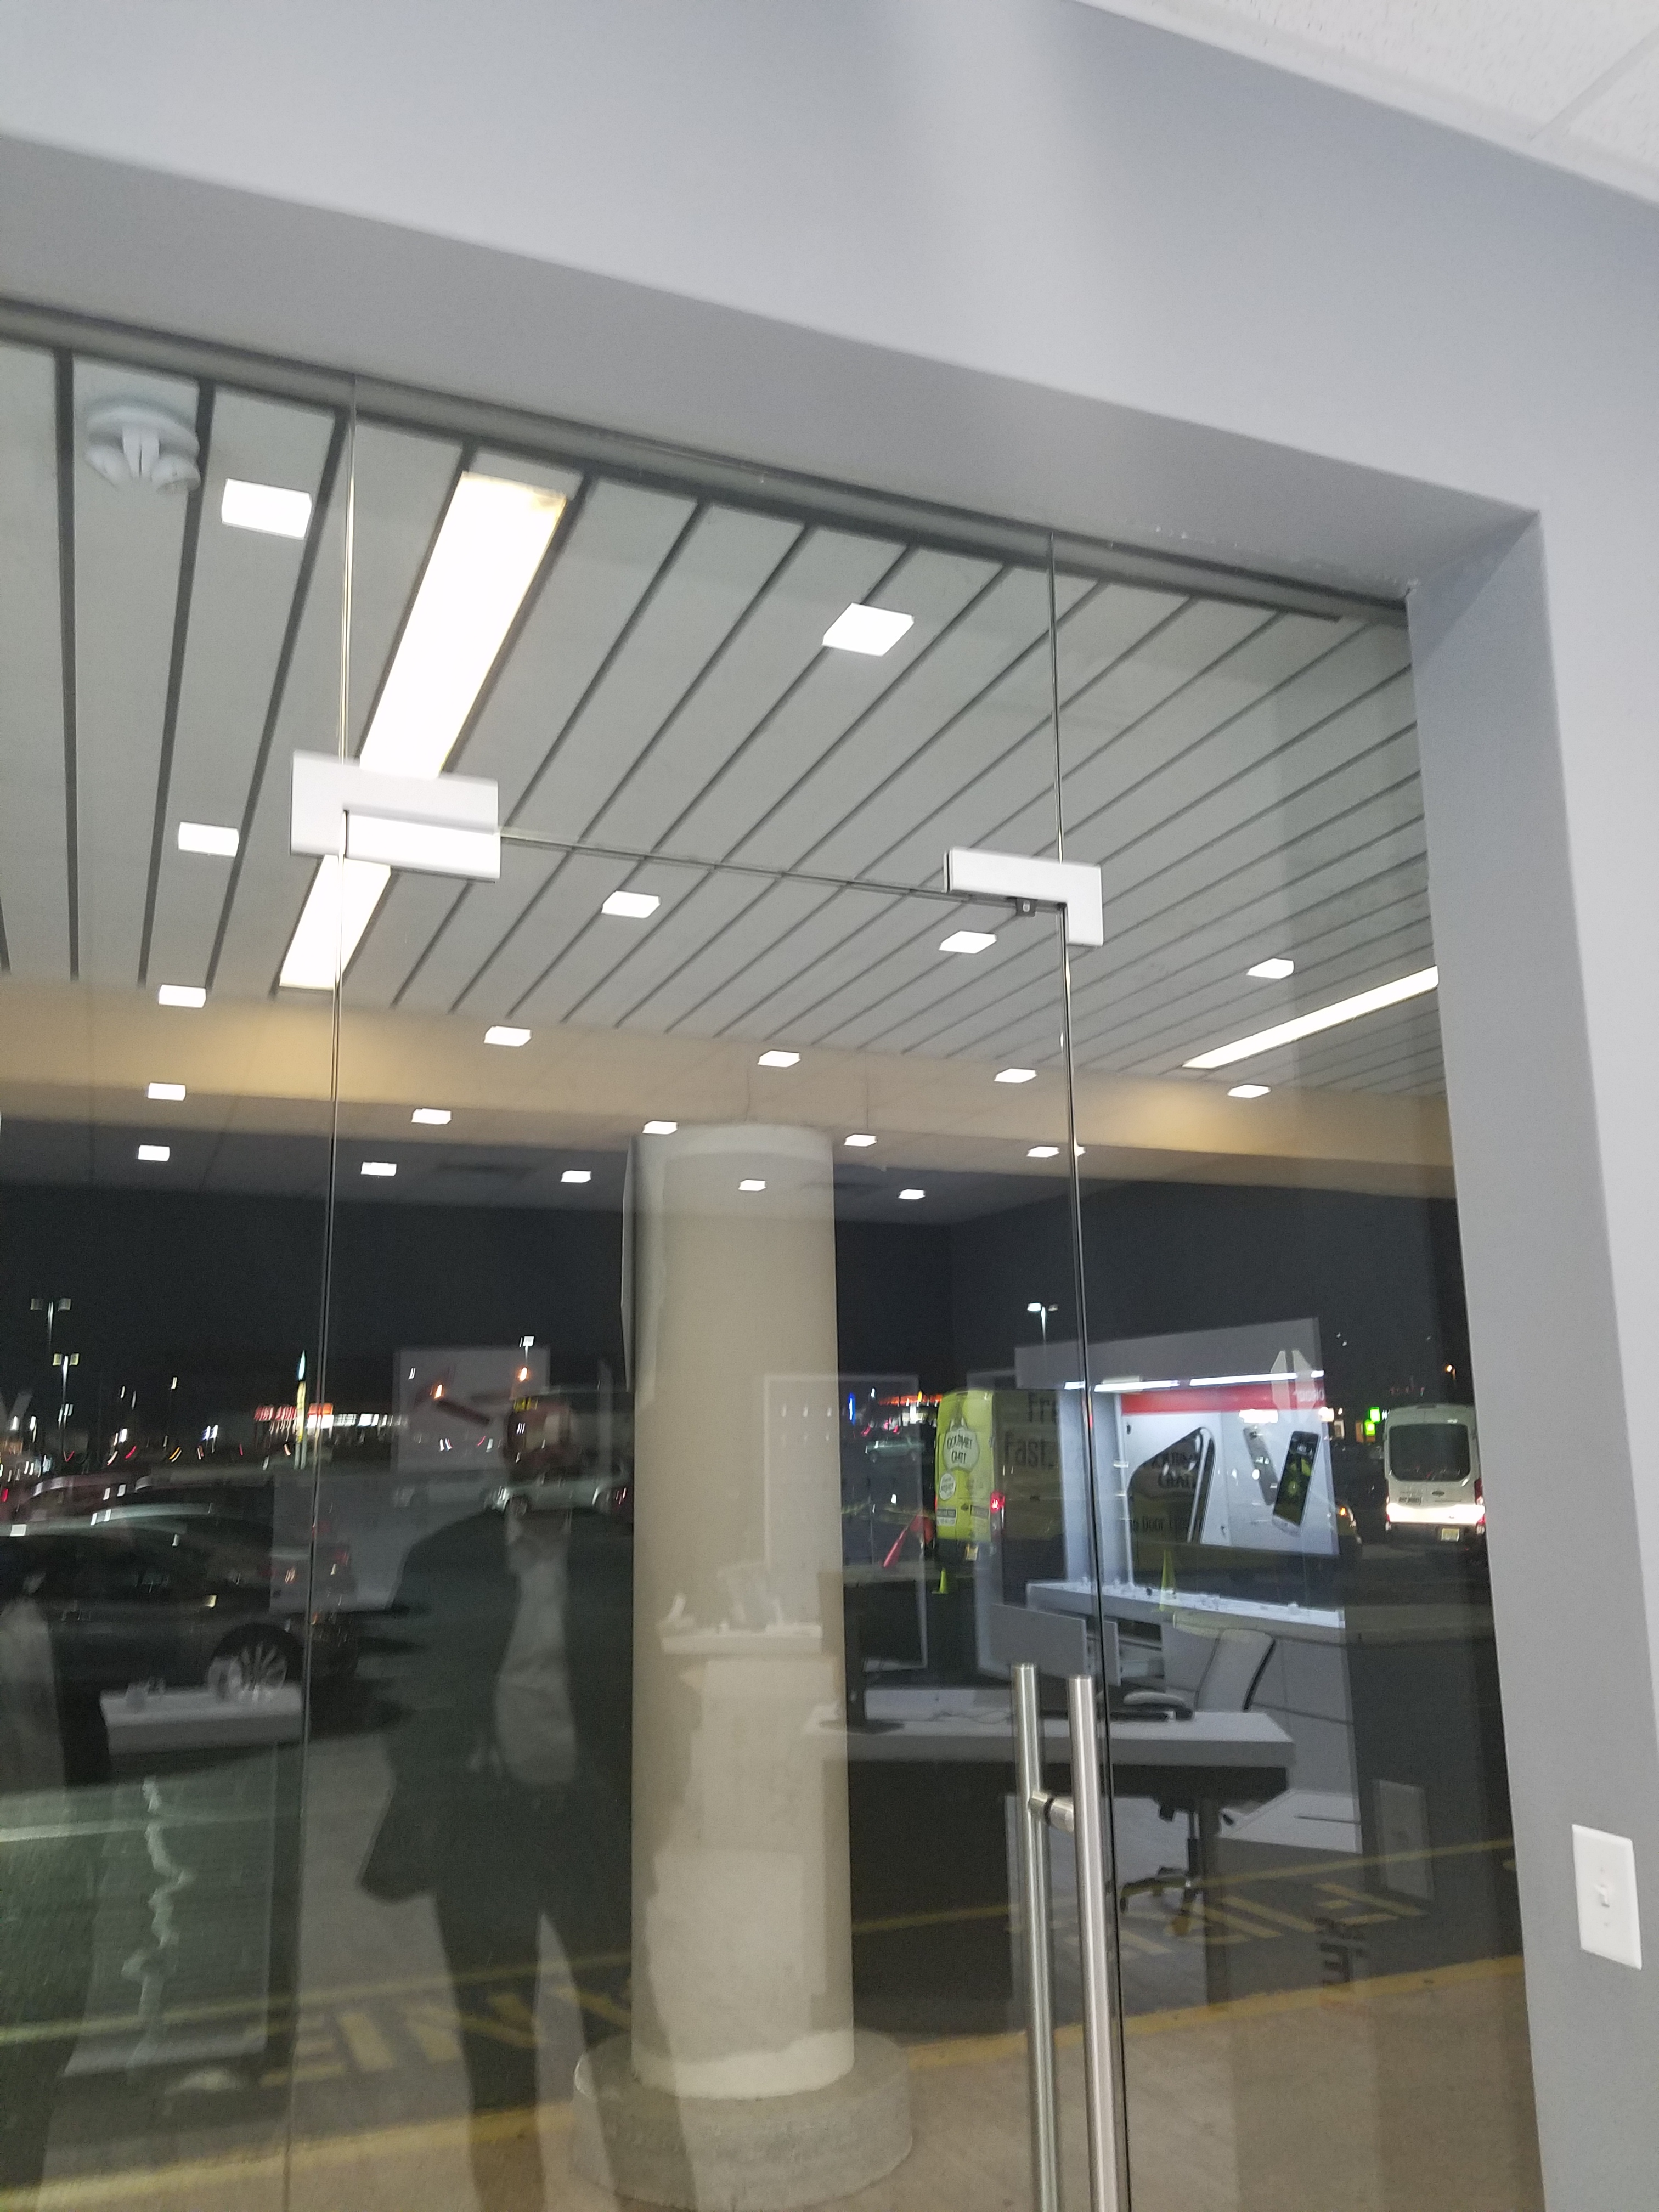 Storefront Windows And Doors how to put a maglock on a 100% glass door with glass windows